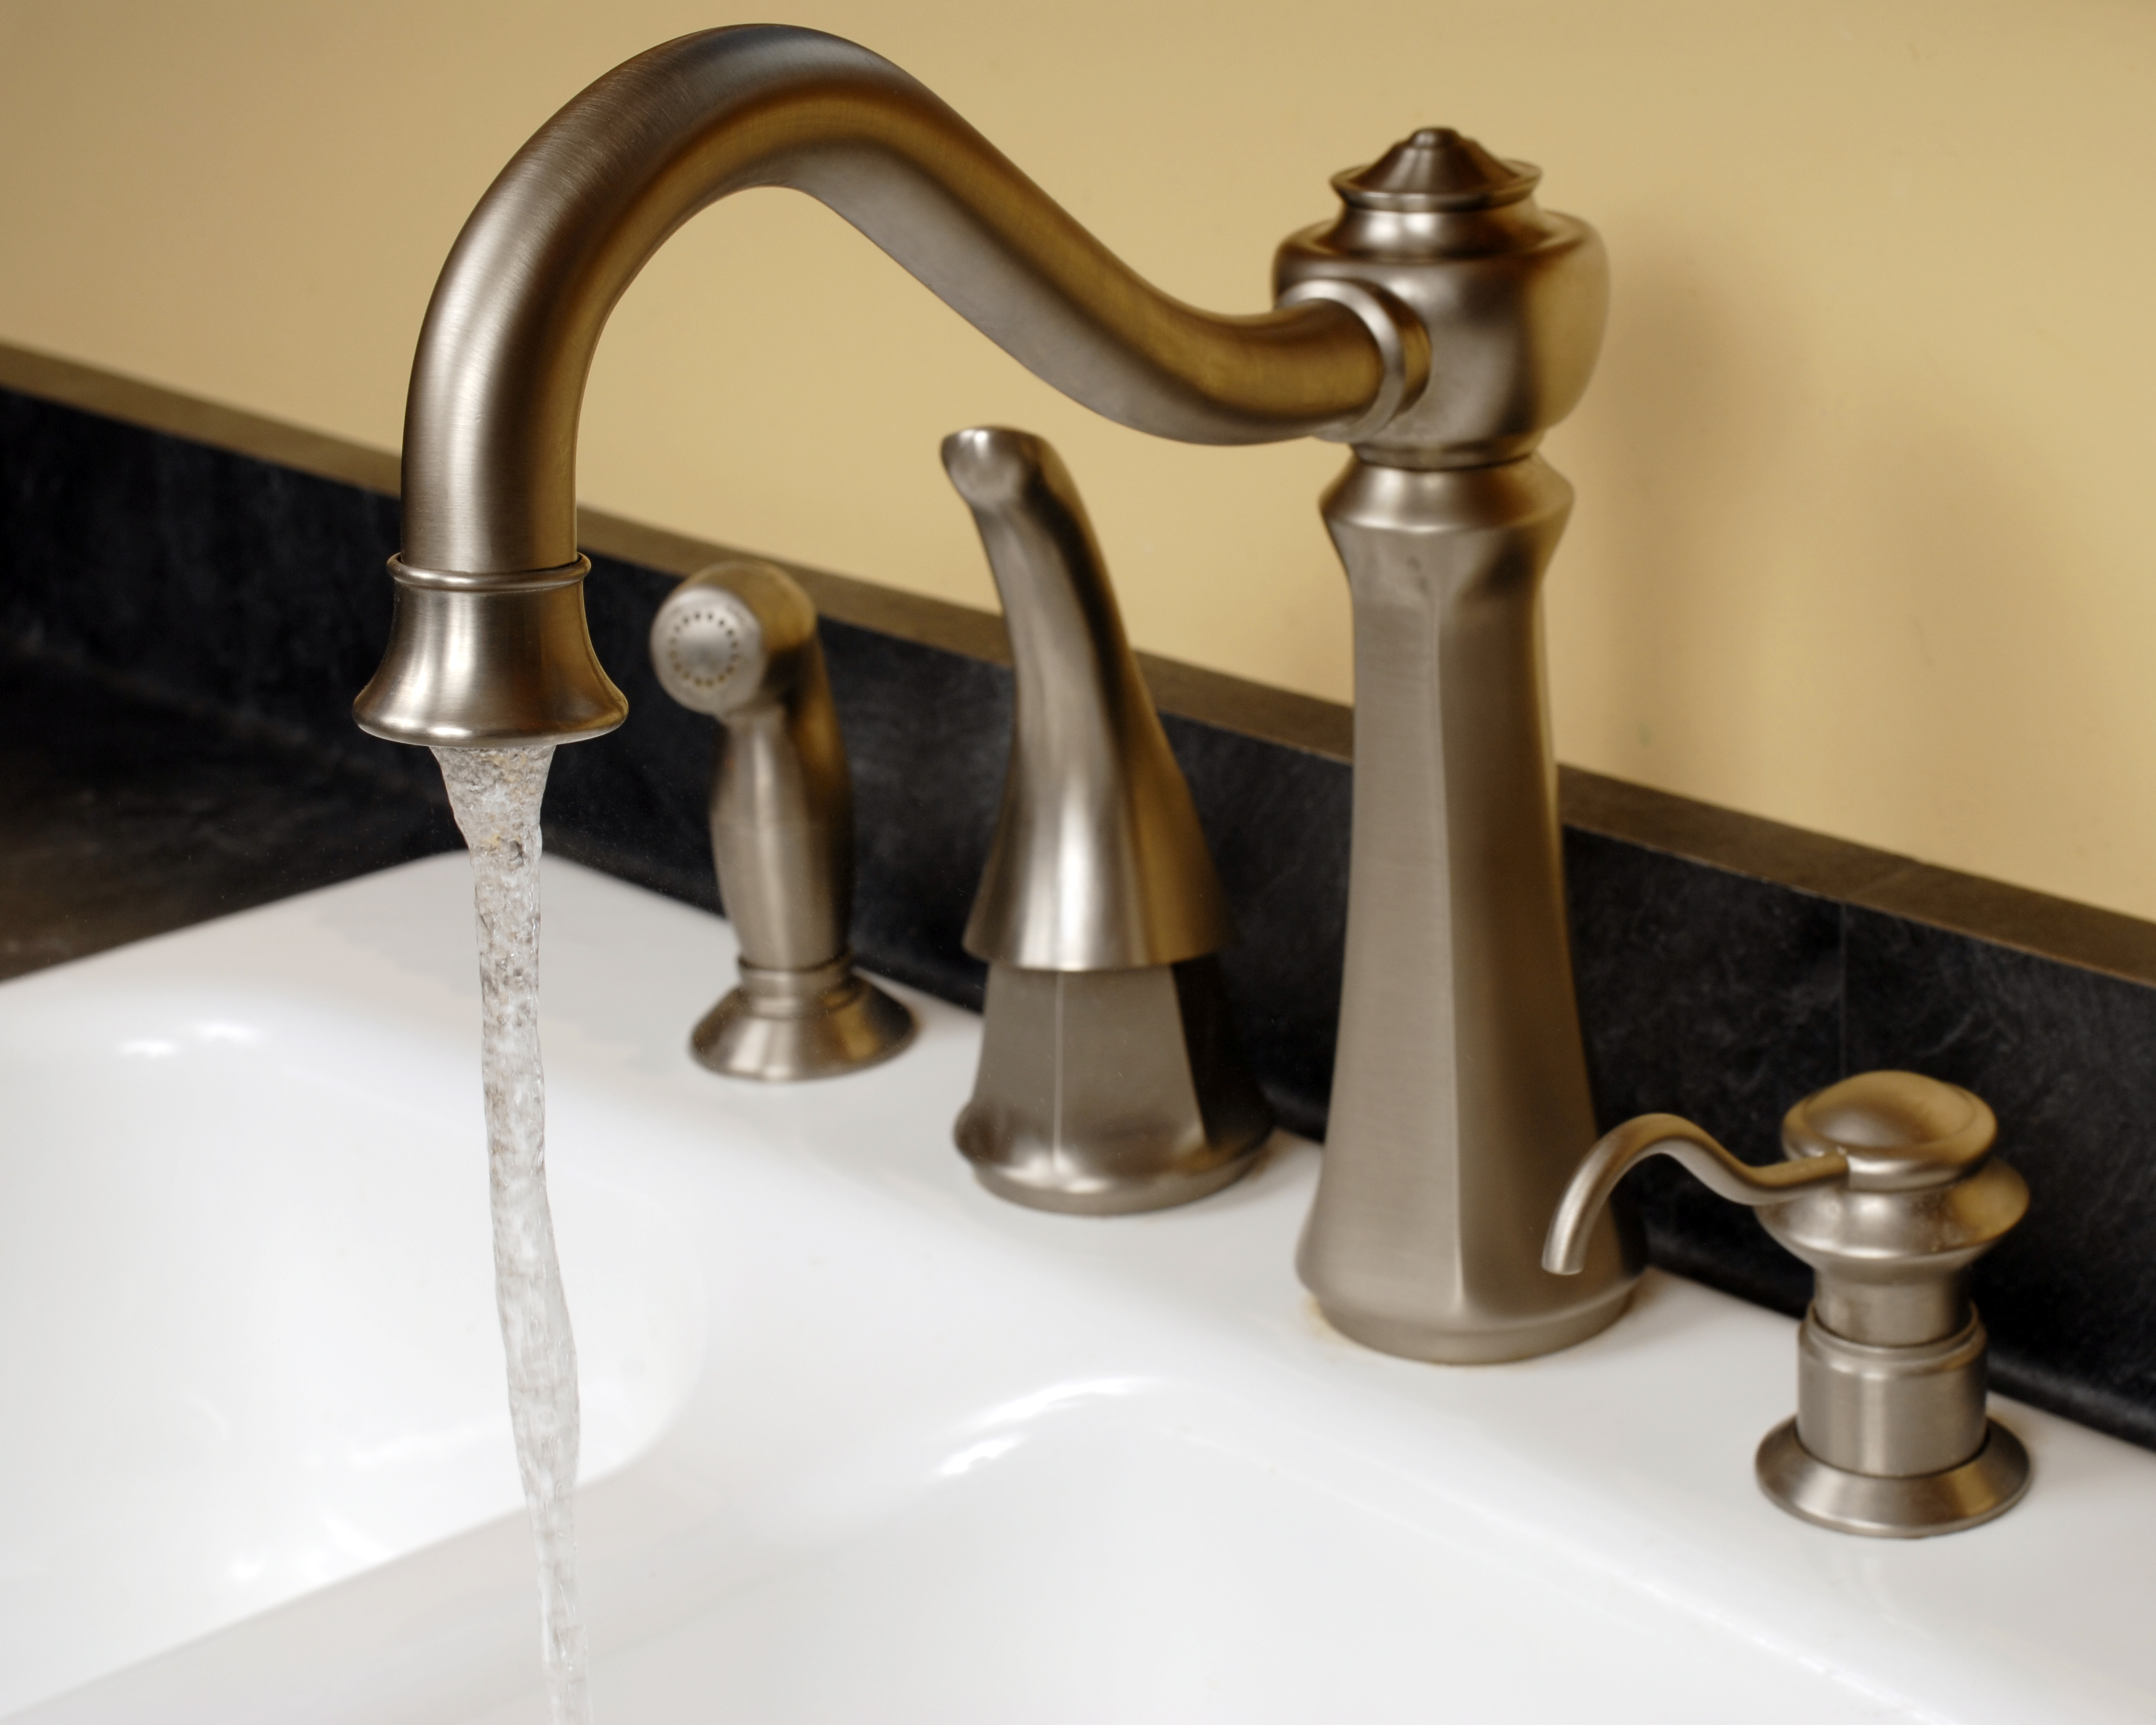 How To Fix A Leaky Delta Two Handled Kitchen Faucet